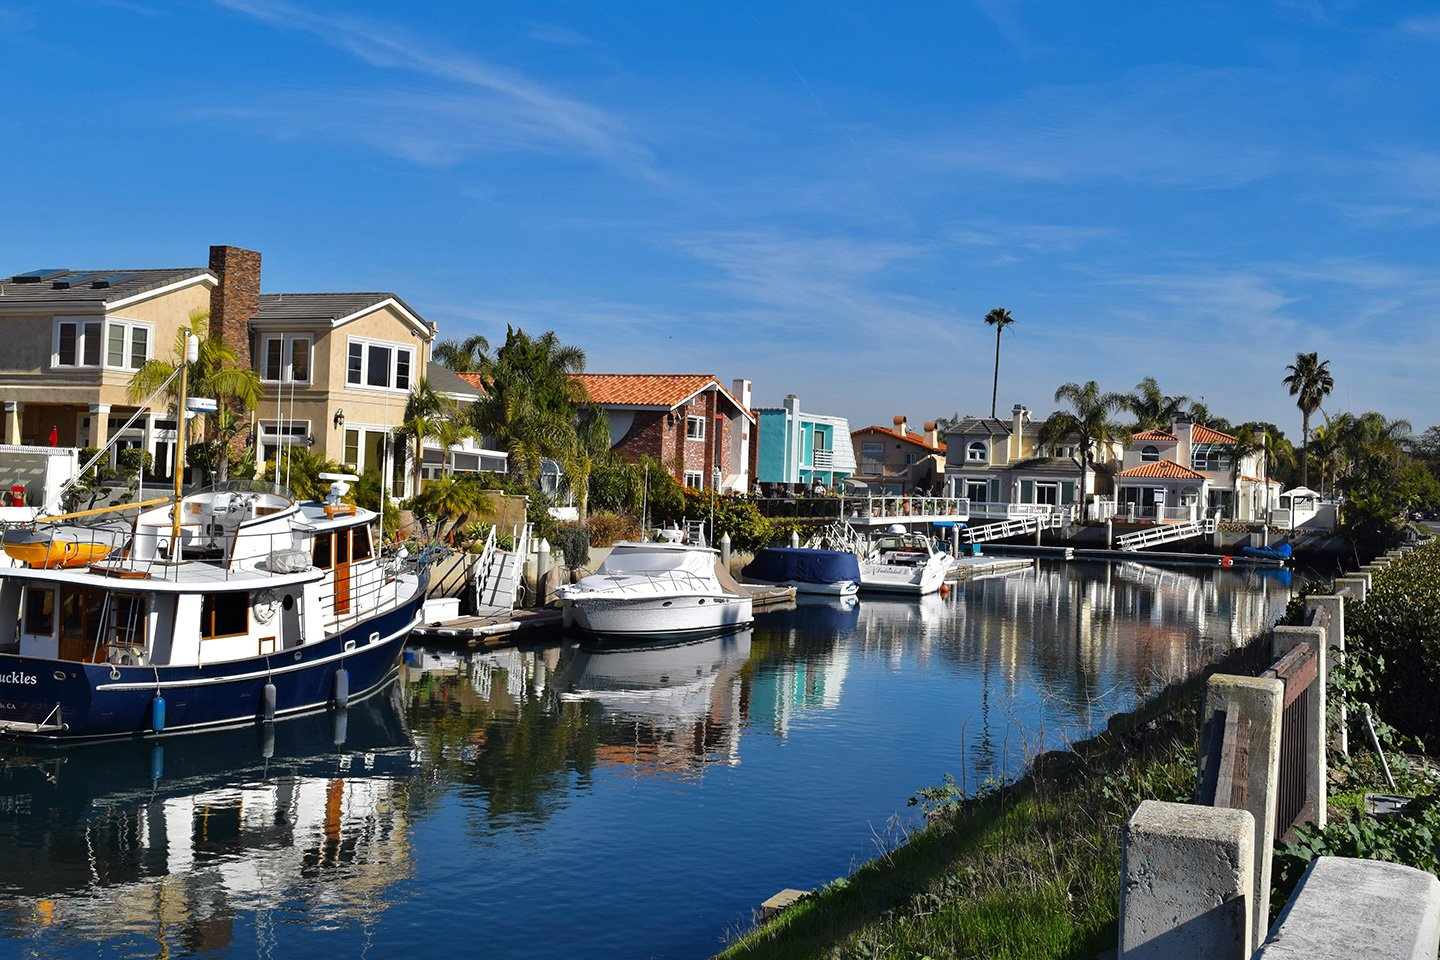 Boats in the canal in Oxnard CA